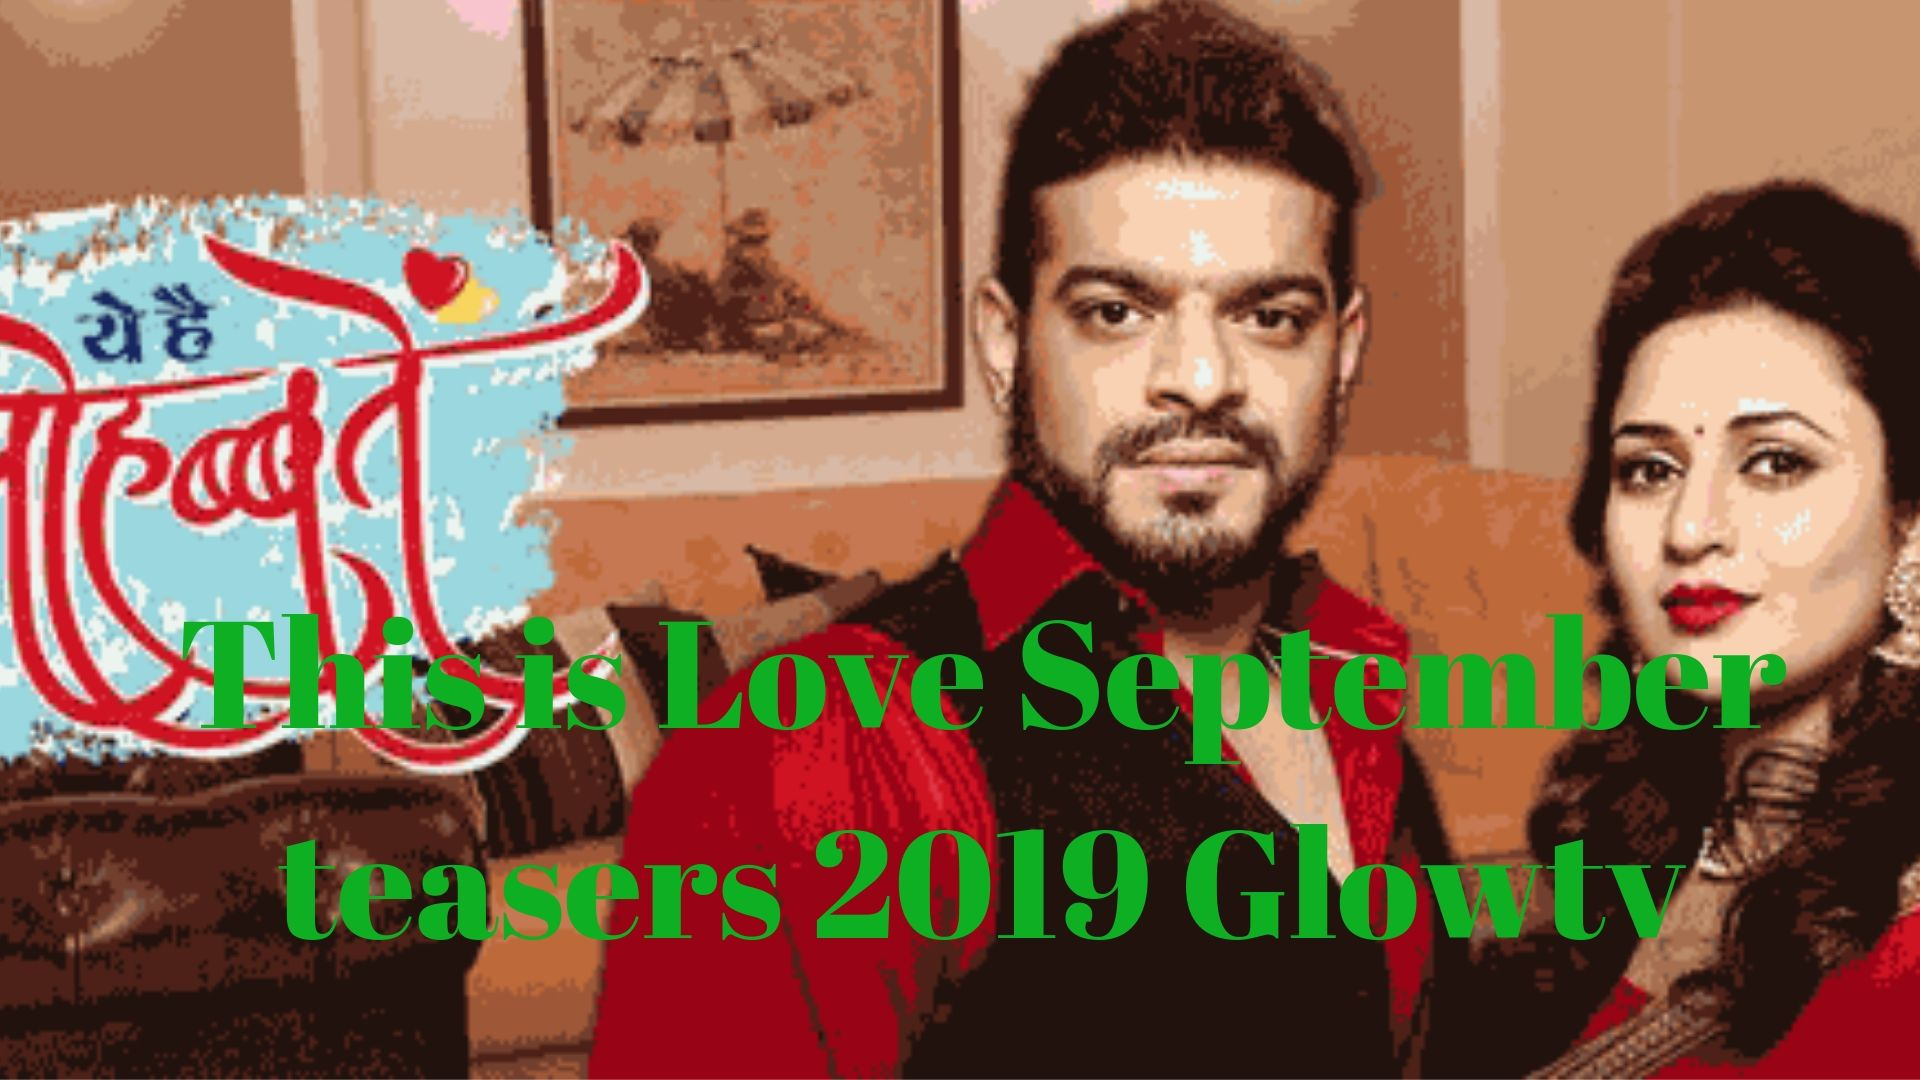 This is Love September teasers 2019 On Glow tv